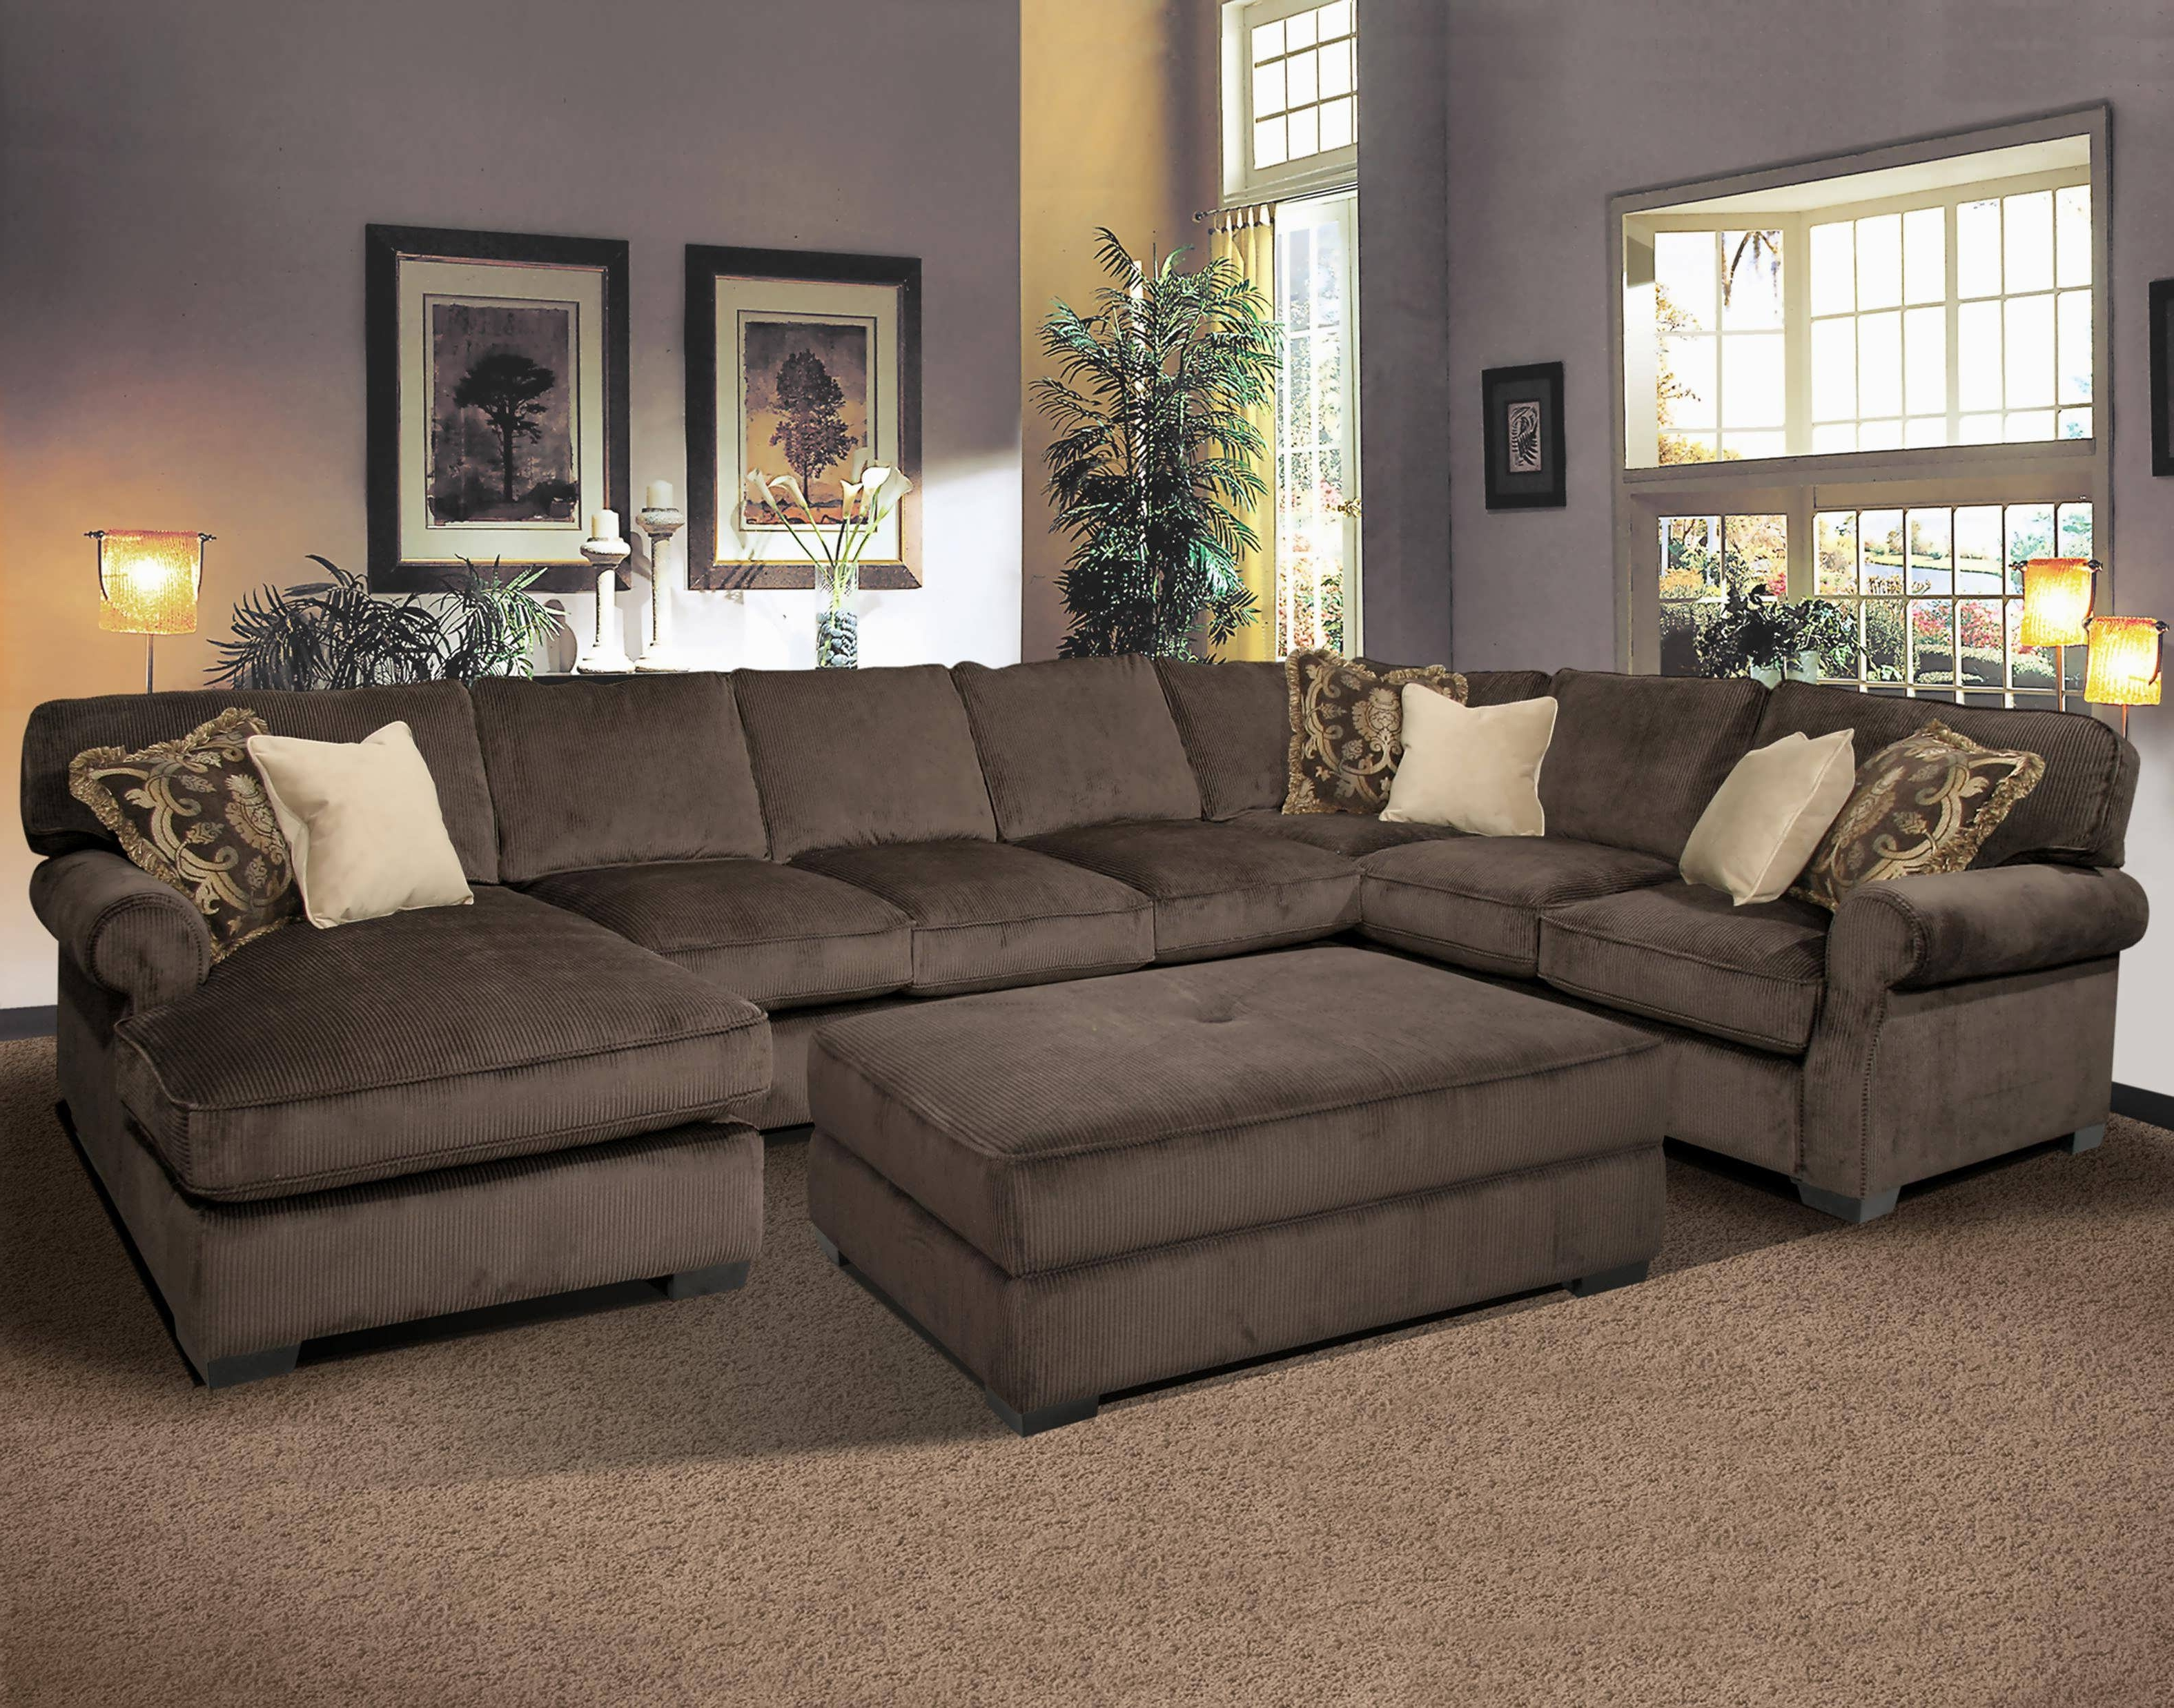 Sectional Sleeper Sofas With Chaise With 2017 Sofa : Leather Reclining Sectional 4 Piece Sectional Sofa (View 12 of 15)